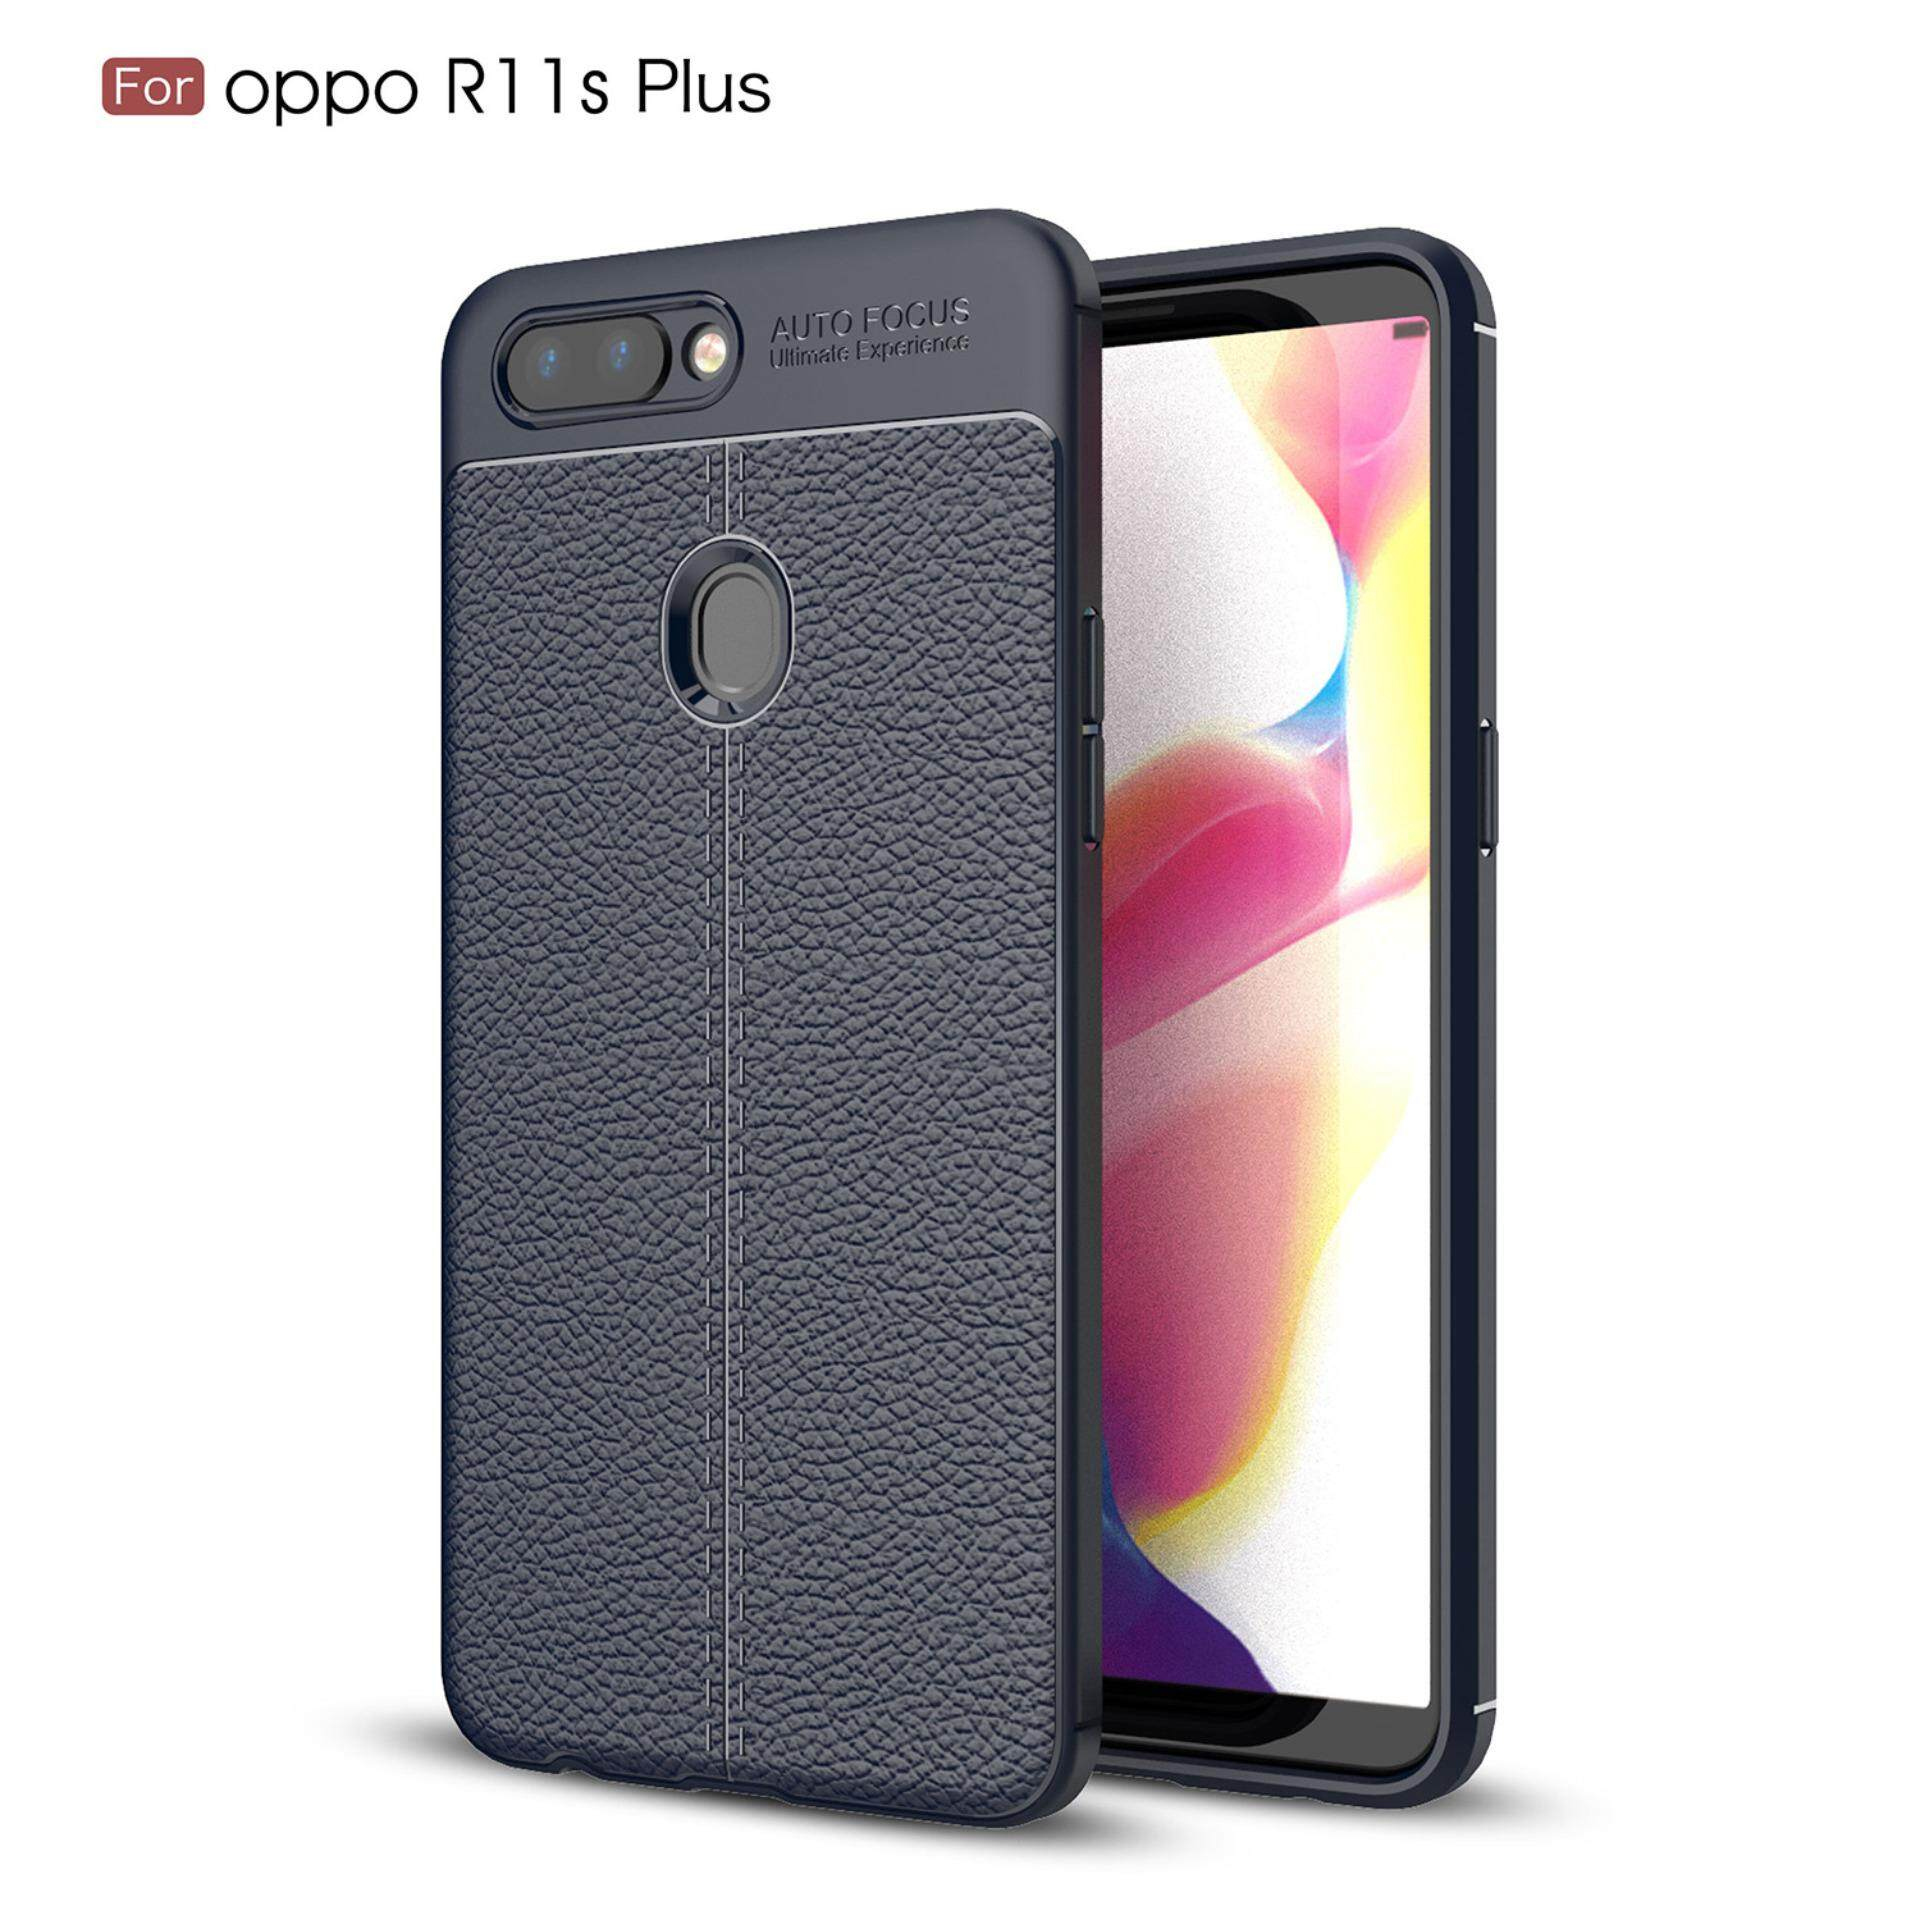 OPPO R11S Plus Case, Kunpon 3D Skin Painting Non Slip Armor Shock Absorption Carbon Fiber Texture Soft TPU Leather Full Protection Phone Case Cover Casing for OPPO R11S Plus - Navy - intl